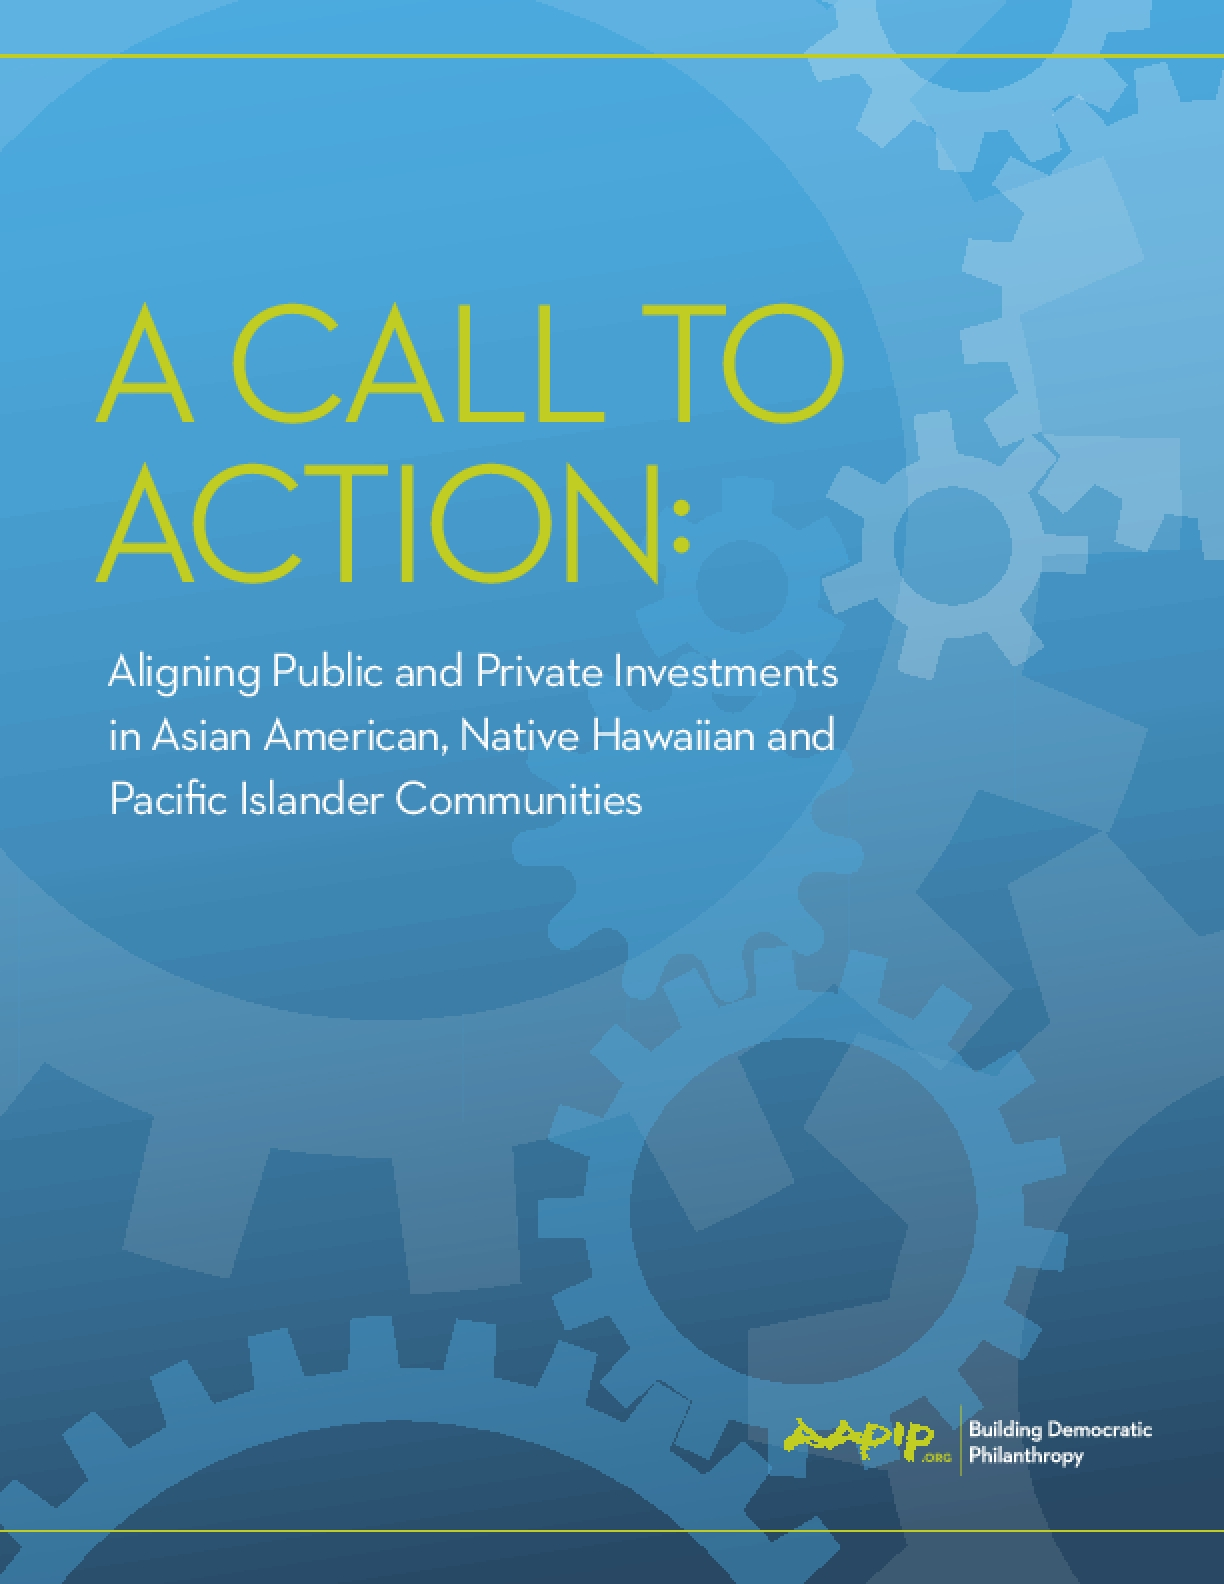 A Call to Action: Aligning Public and Private Investments in Asian American, Native Hawaiian and Pacific Islander Communities